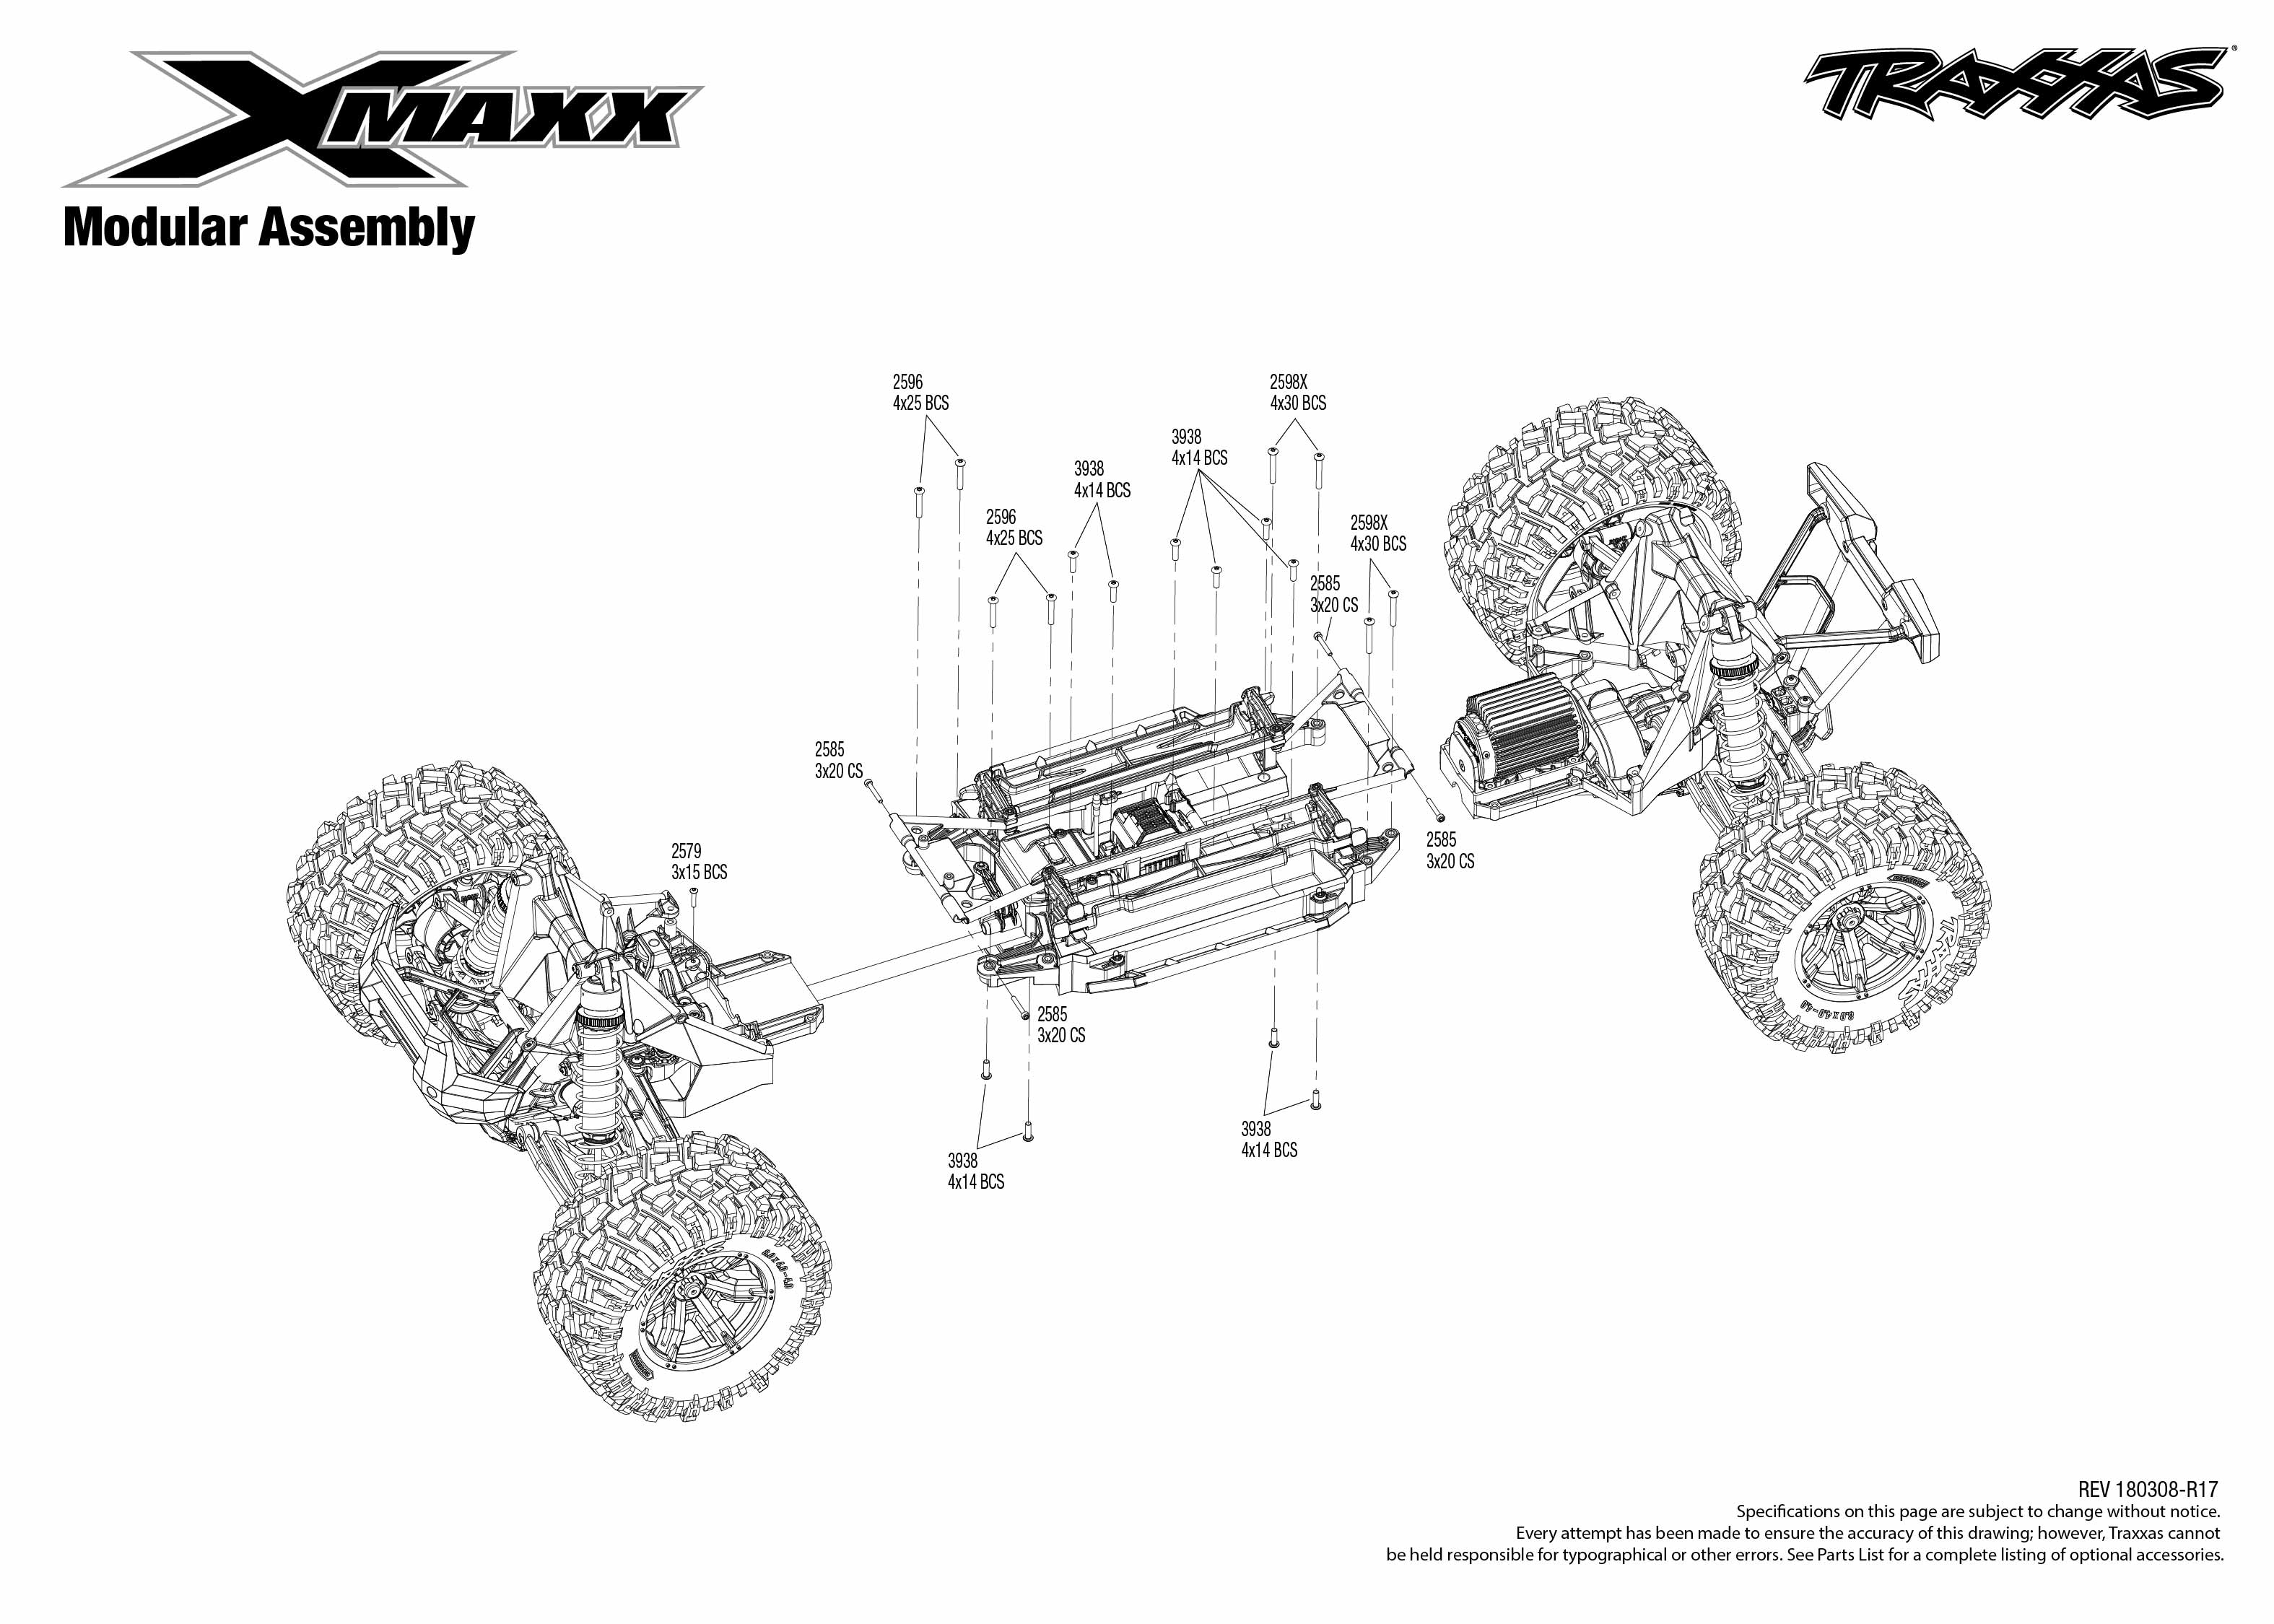 X Maxx 4 Modular Assembly Exploded View